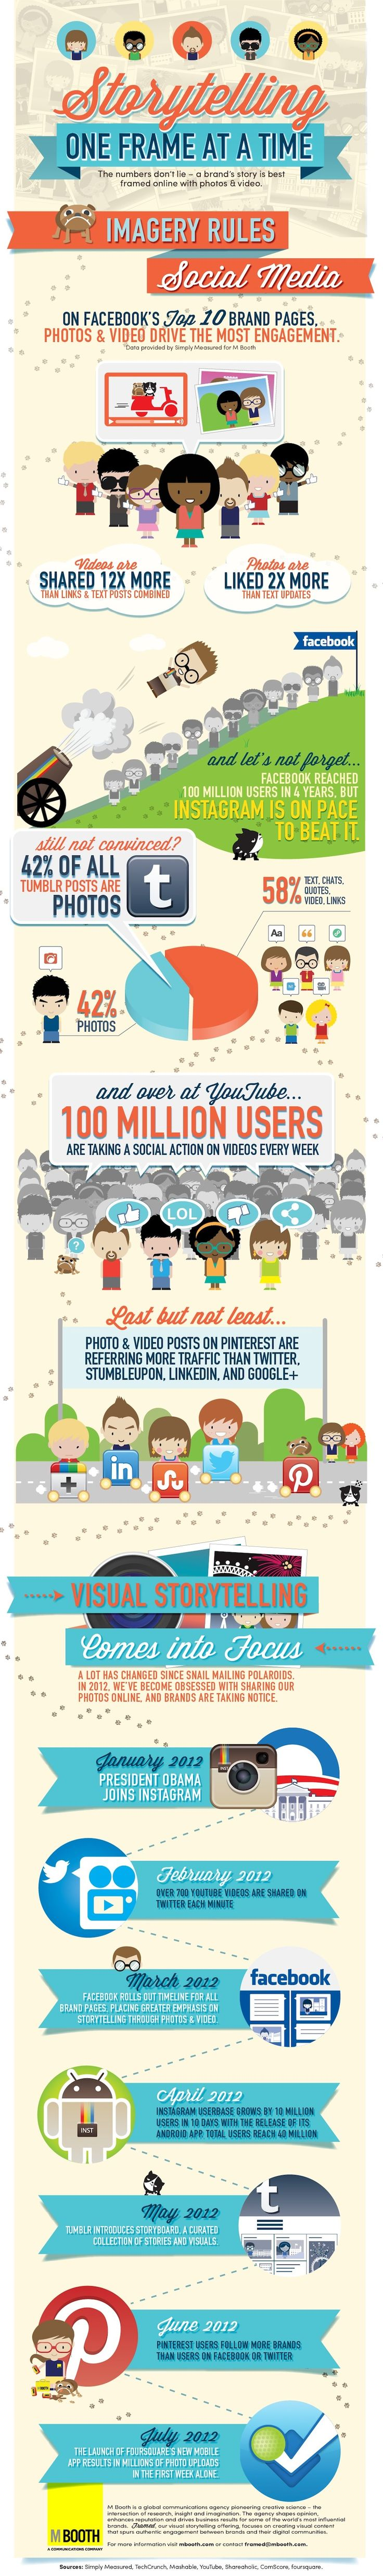 For Brand Engagement, Visuals Rule